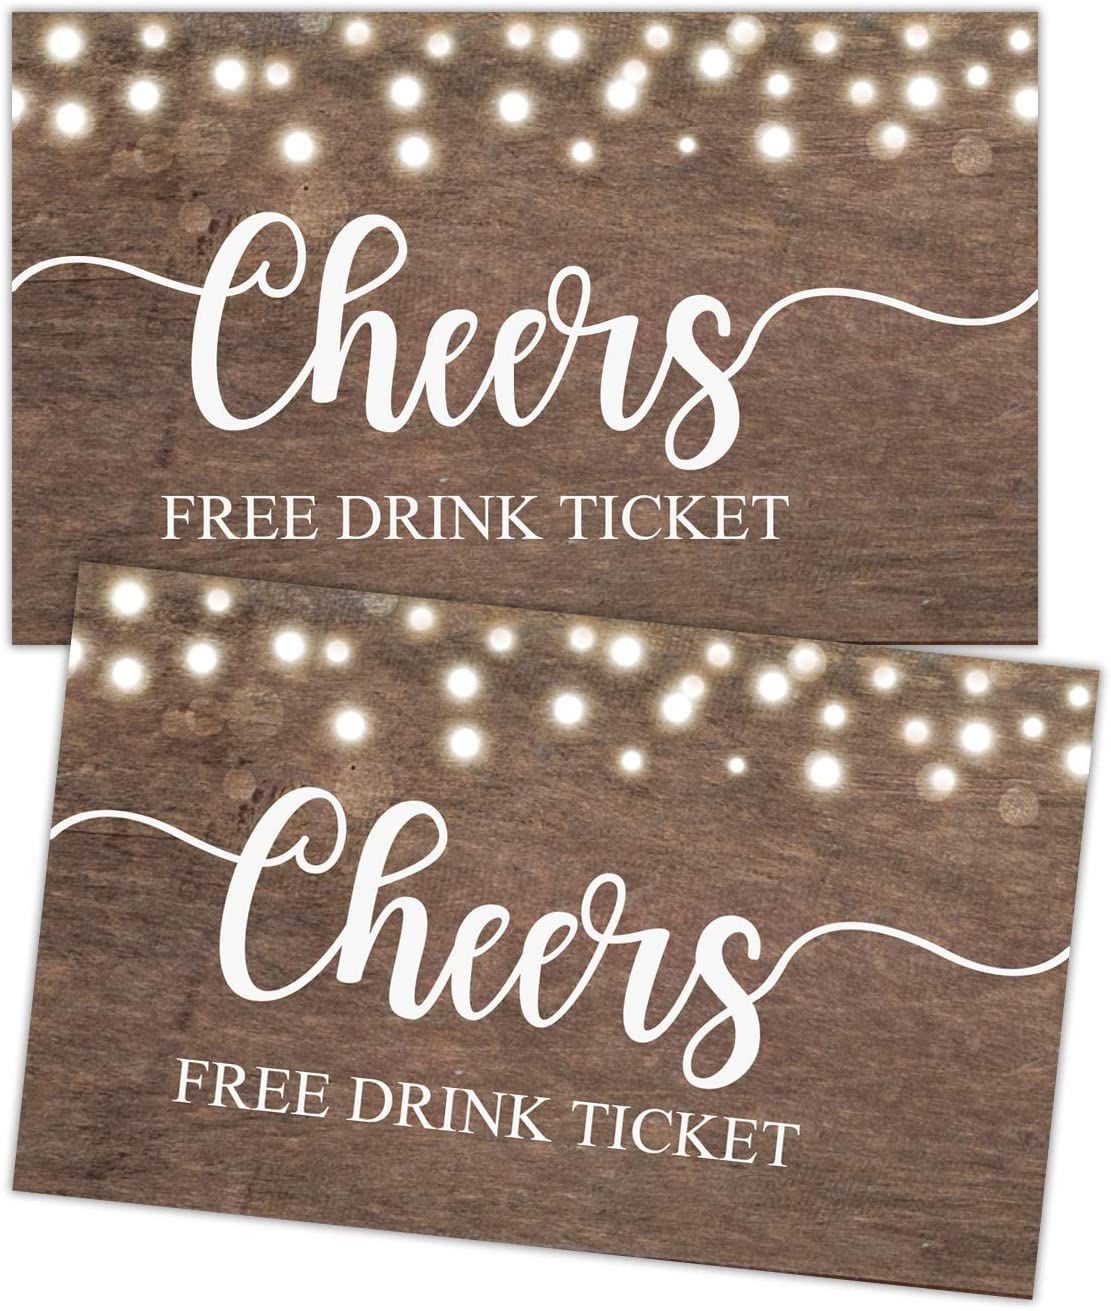 50 Free Drink Tickets, Cheers Tickets, Rustic Drink Ticket Coupons for a Free Drink at Weddings, Work Events or Party, Drink Tickets for Events, Free Drink Tickets for Soft Drink or Food Vouchers.